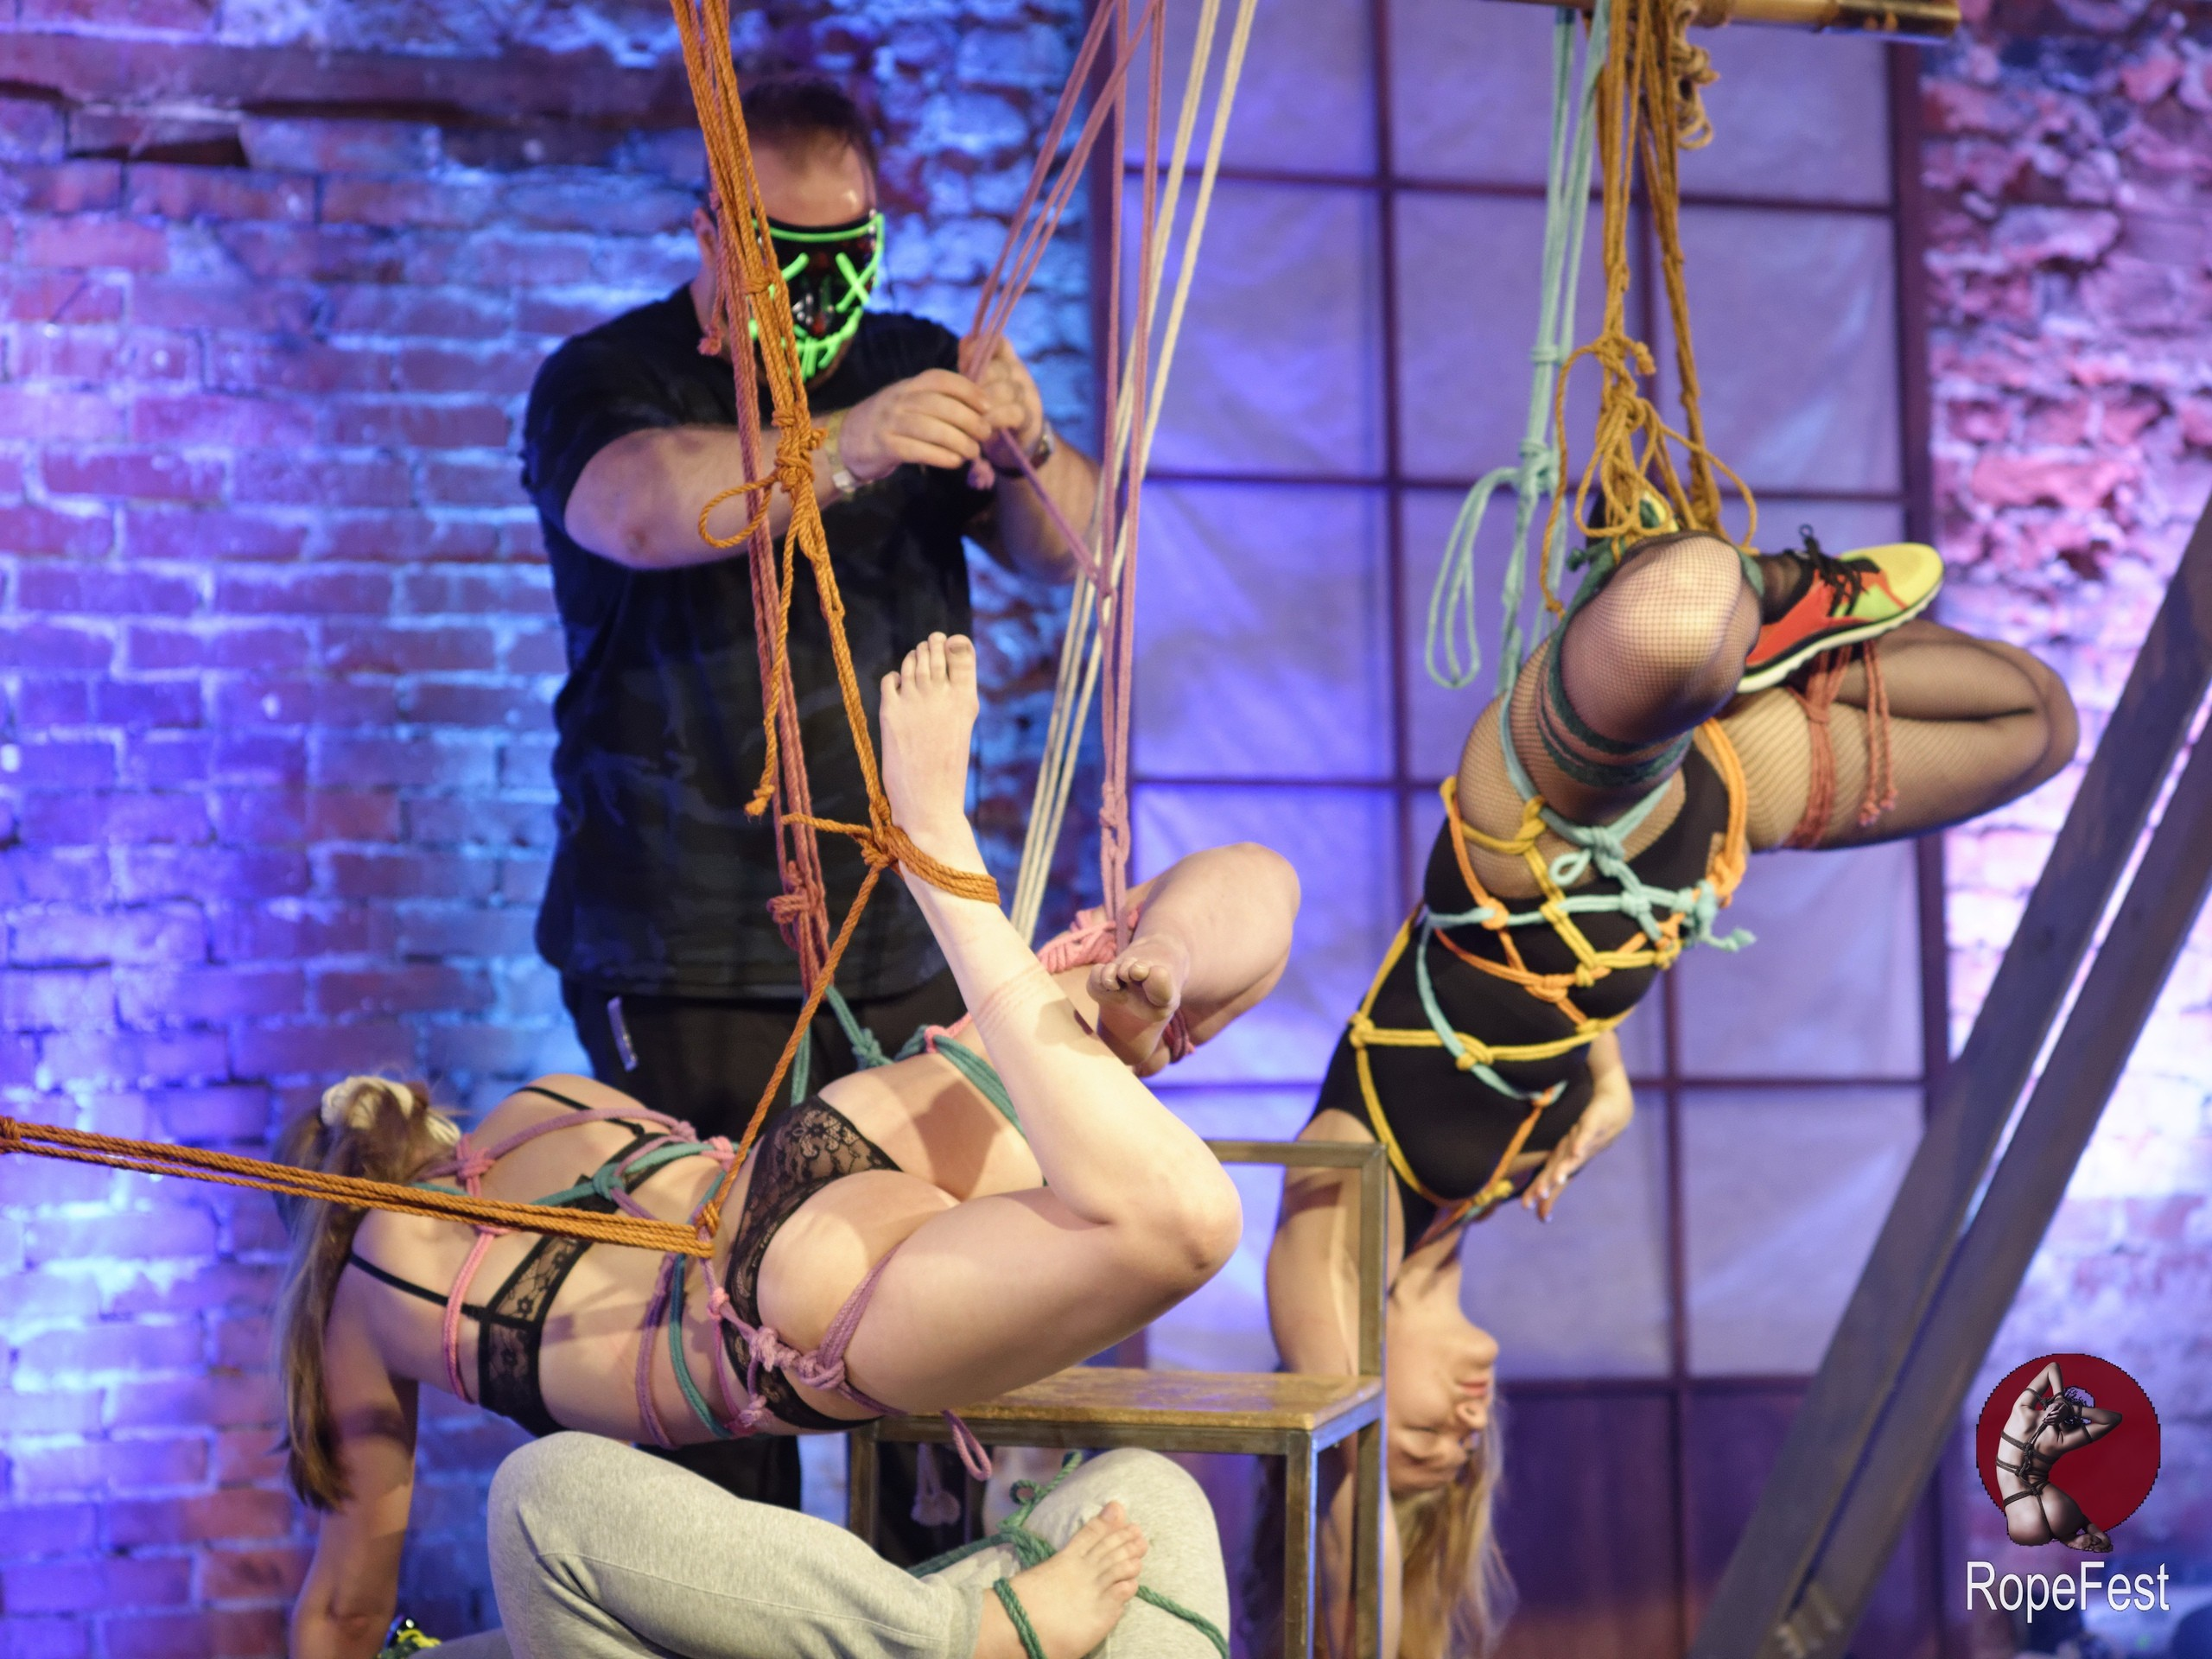 Rope Fest Peterburg . Bondage: Artefackt. Photo by Evgeniy Kuryanov